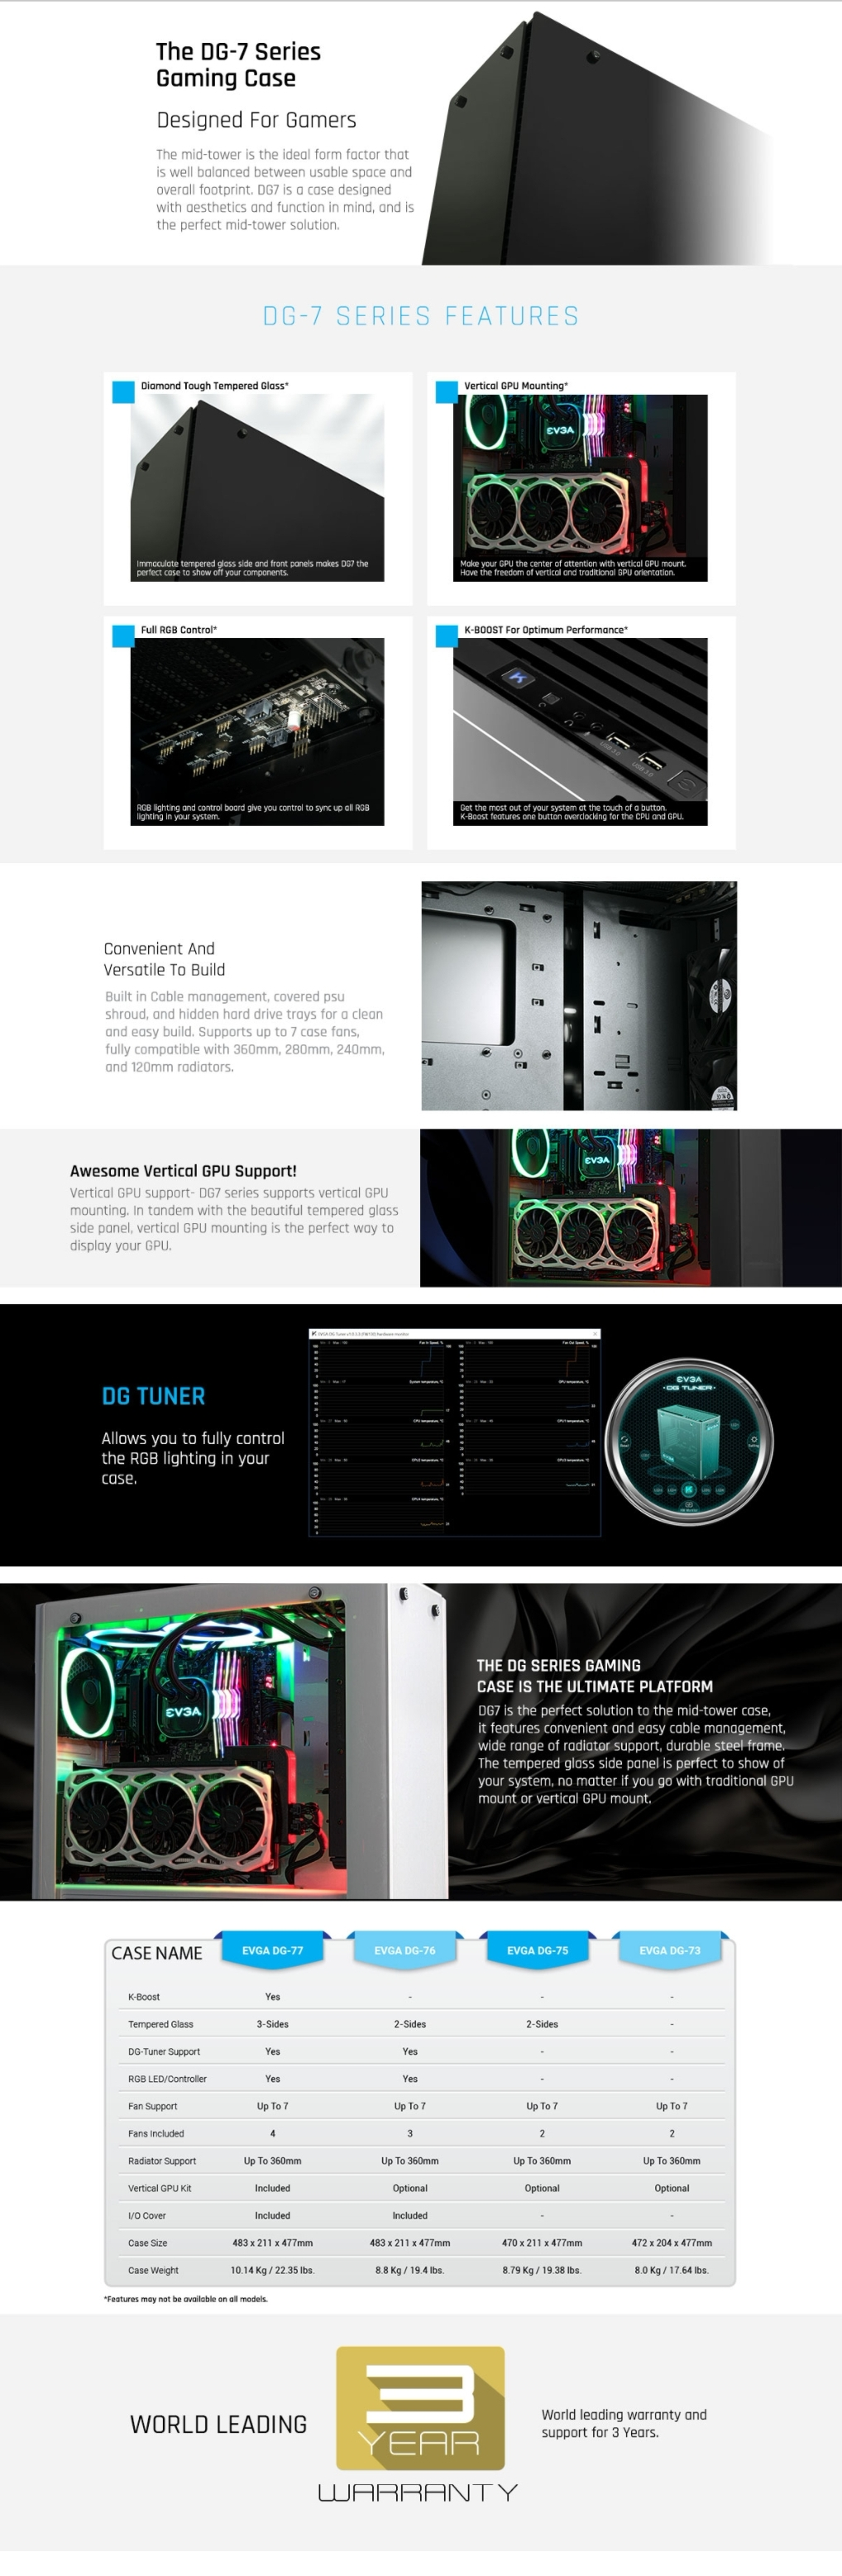 A large marketing image providing additional information about the product eVGA DG-76 Matte Black w/ Tempered Glass RGB Mid Tower Case - Additional alt info not provided